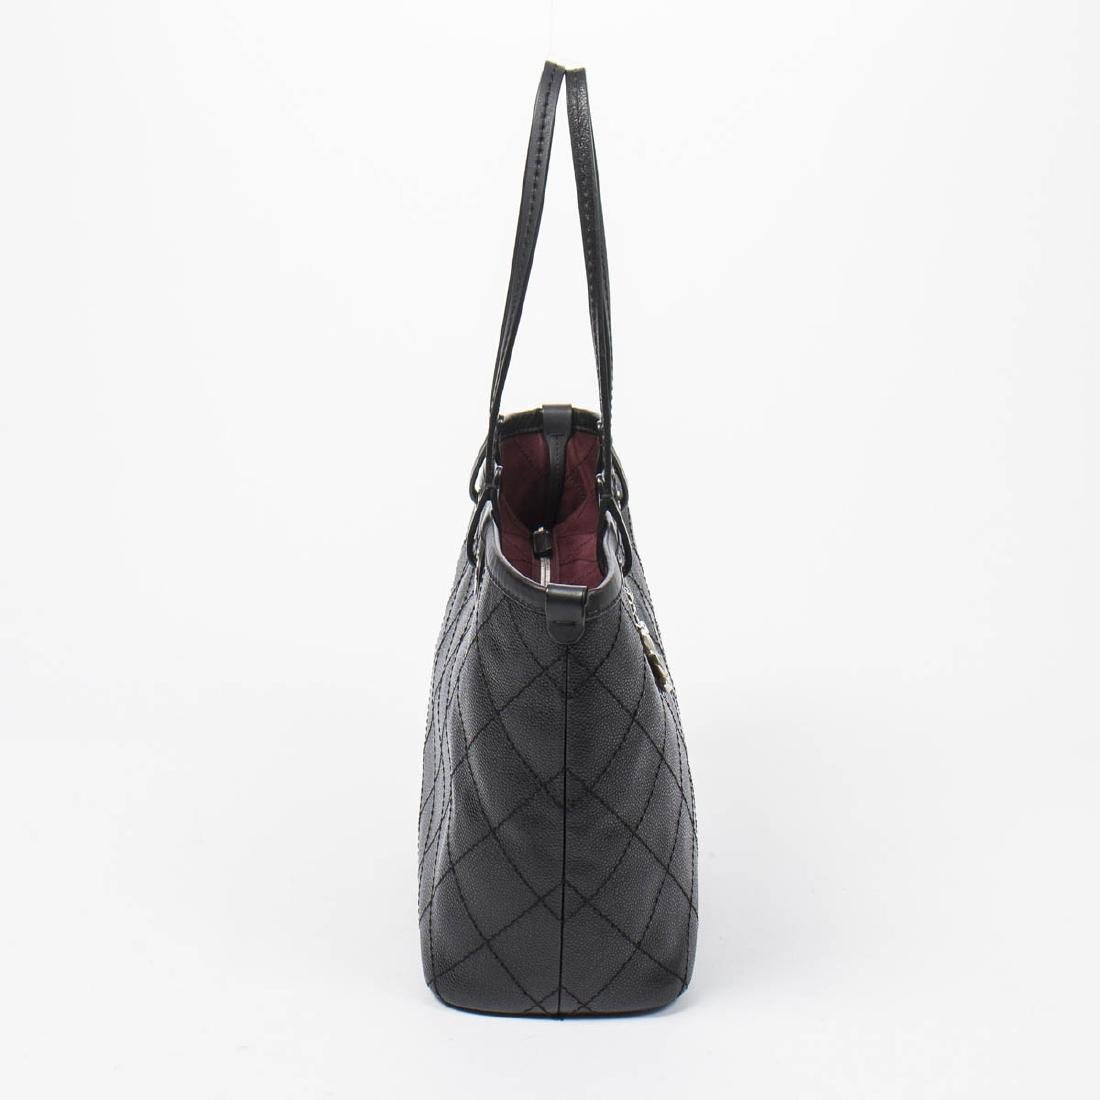 Chanel Shopping Tote MM in Black Quilted Caviar Leather - 4